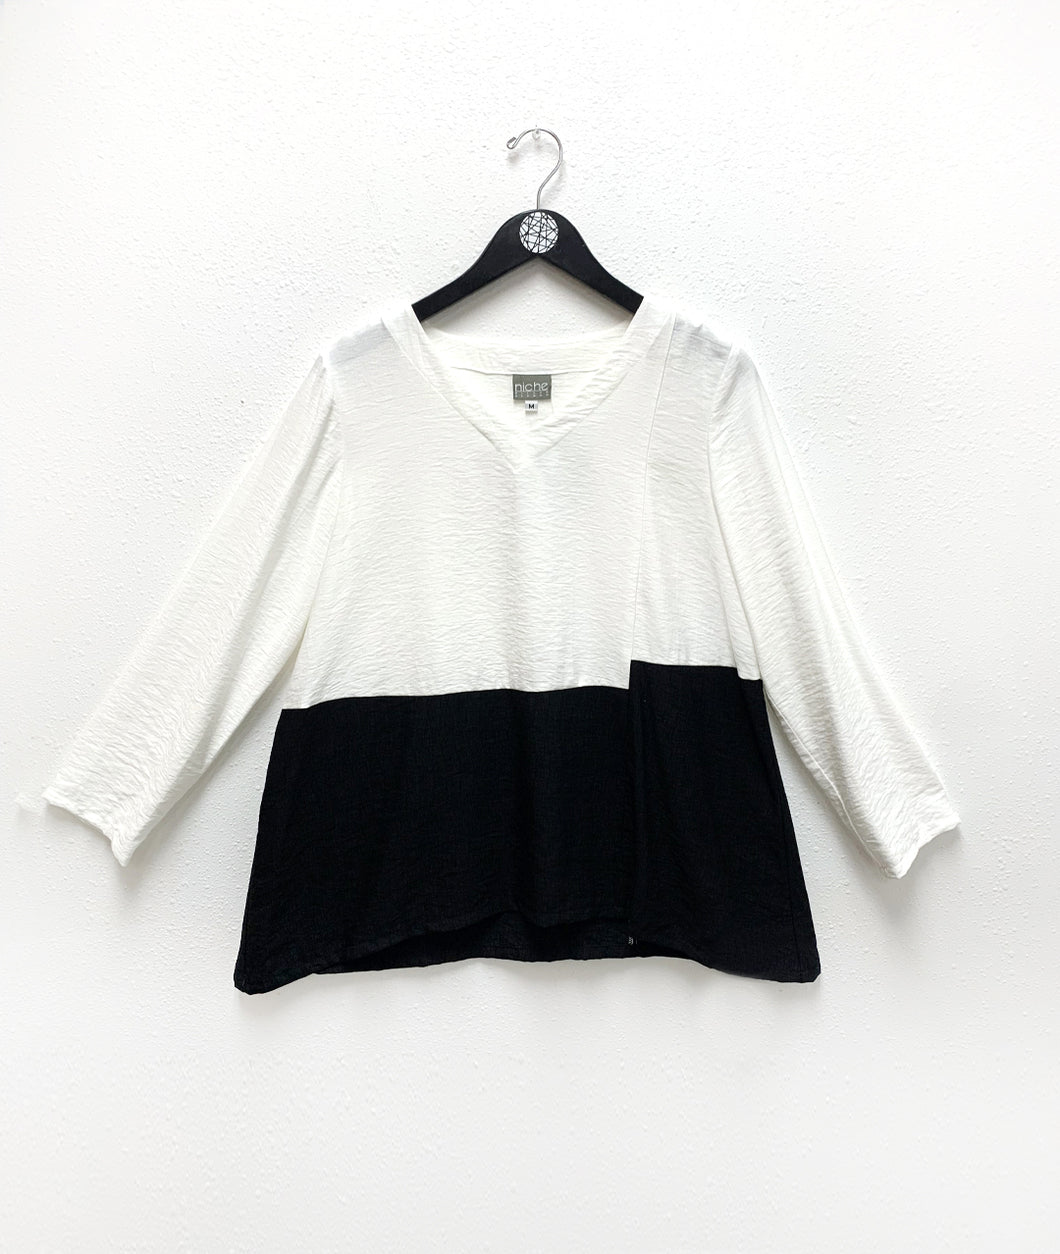 black and white color blocked pullover top with the color changing at the waist. top is white, bottom is black